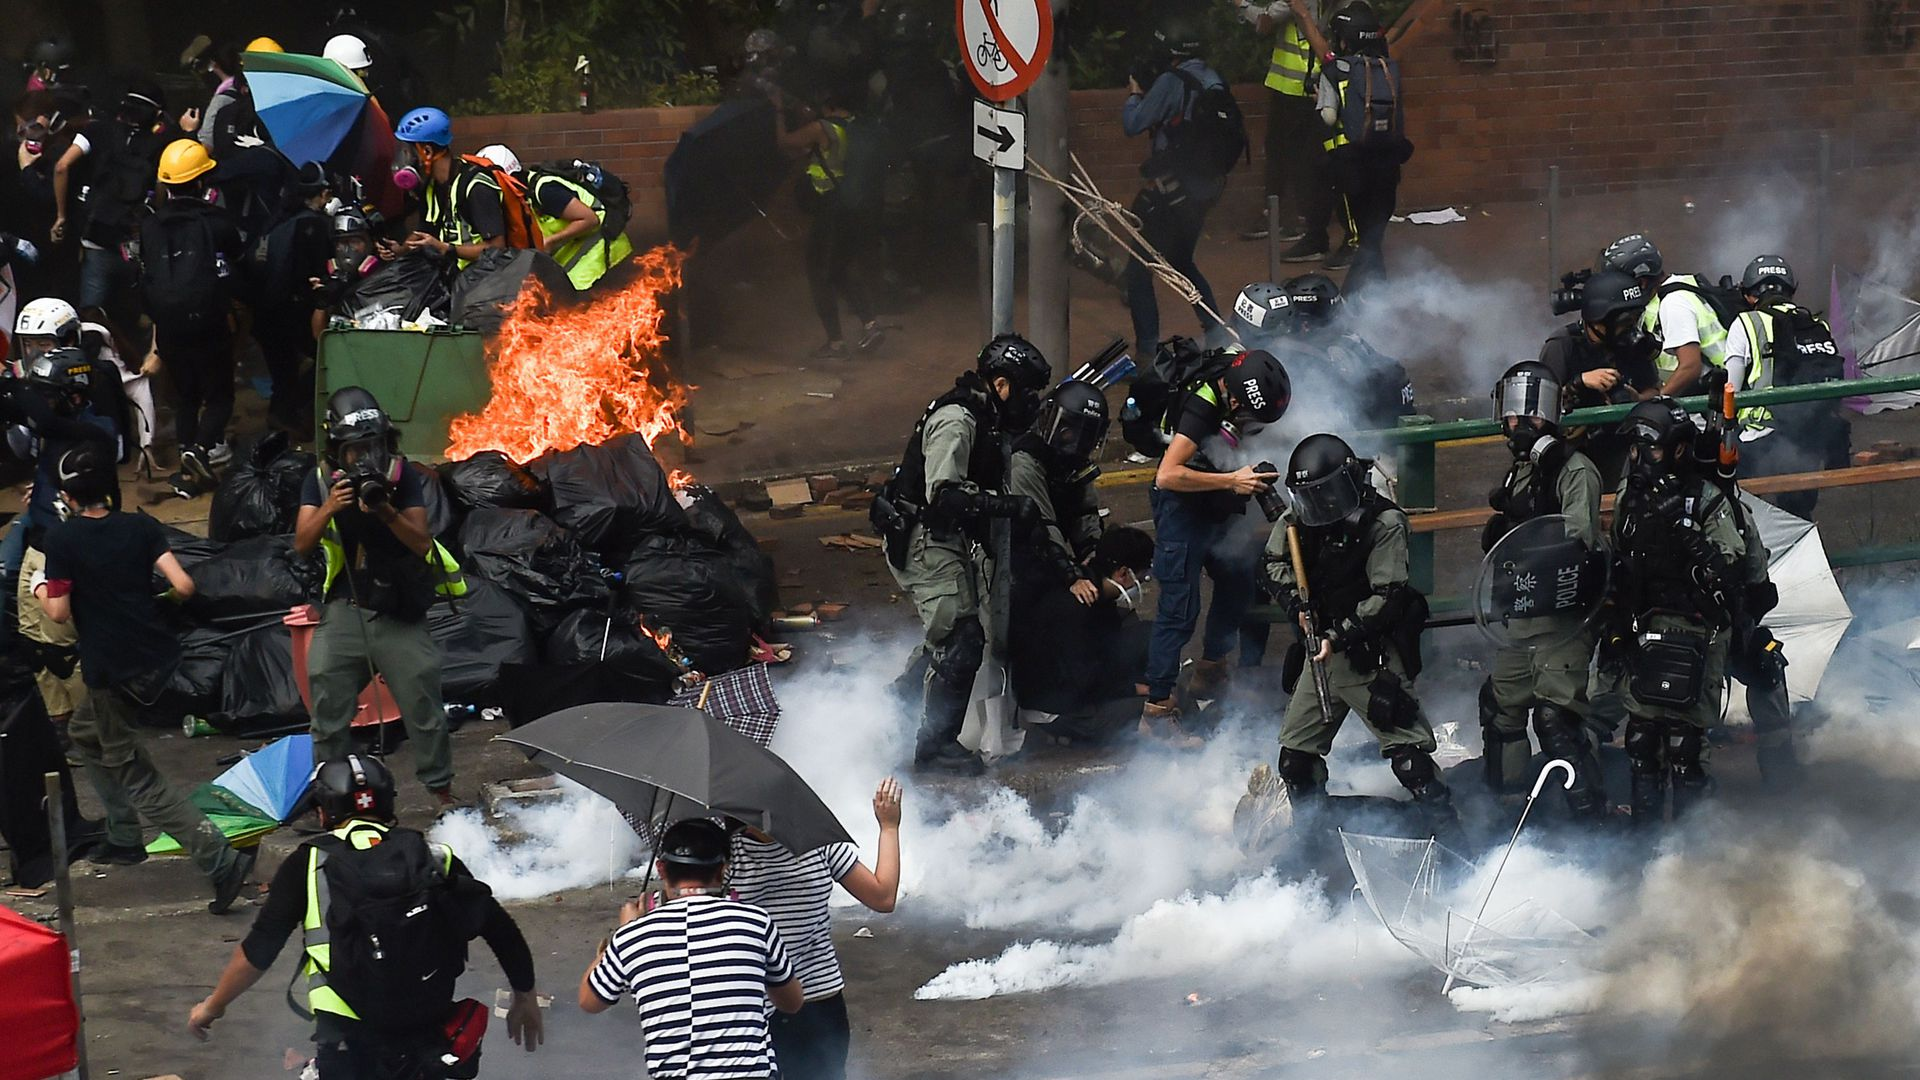 Riot police and protesters clash in the Hung Hom district of Hong Kong on Monday